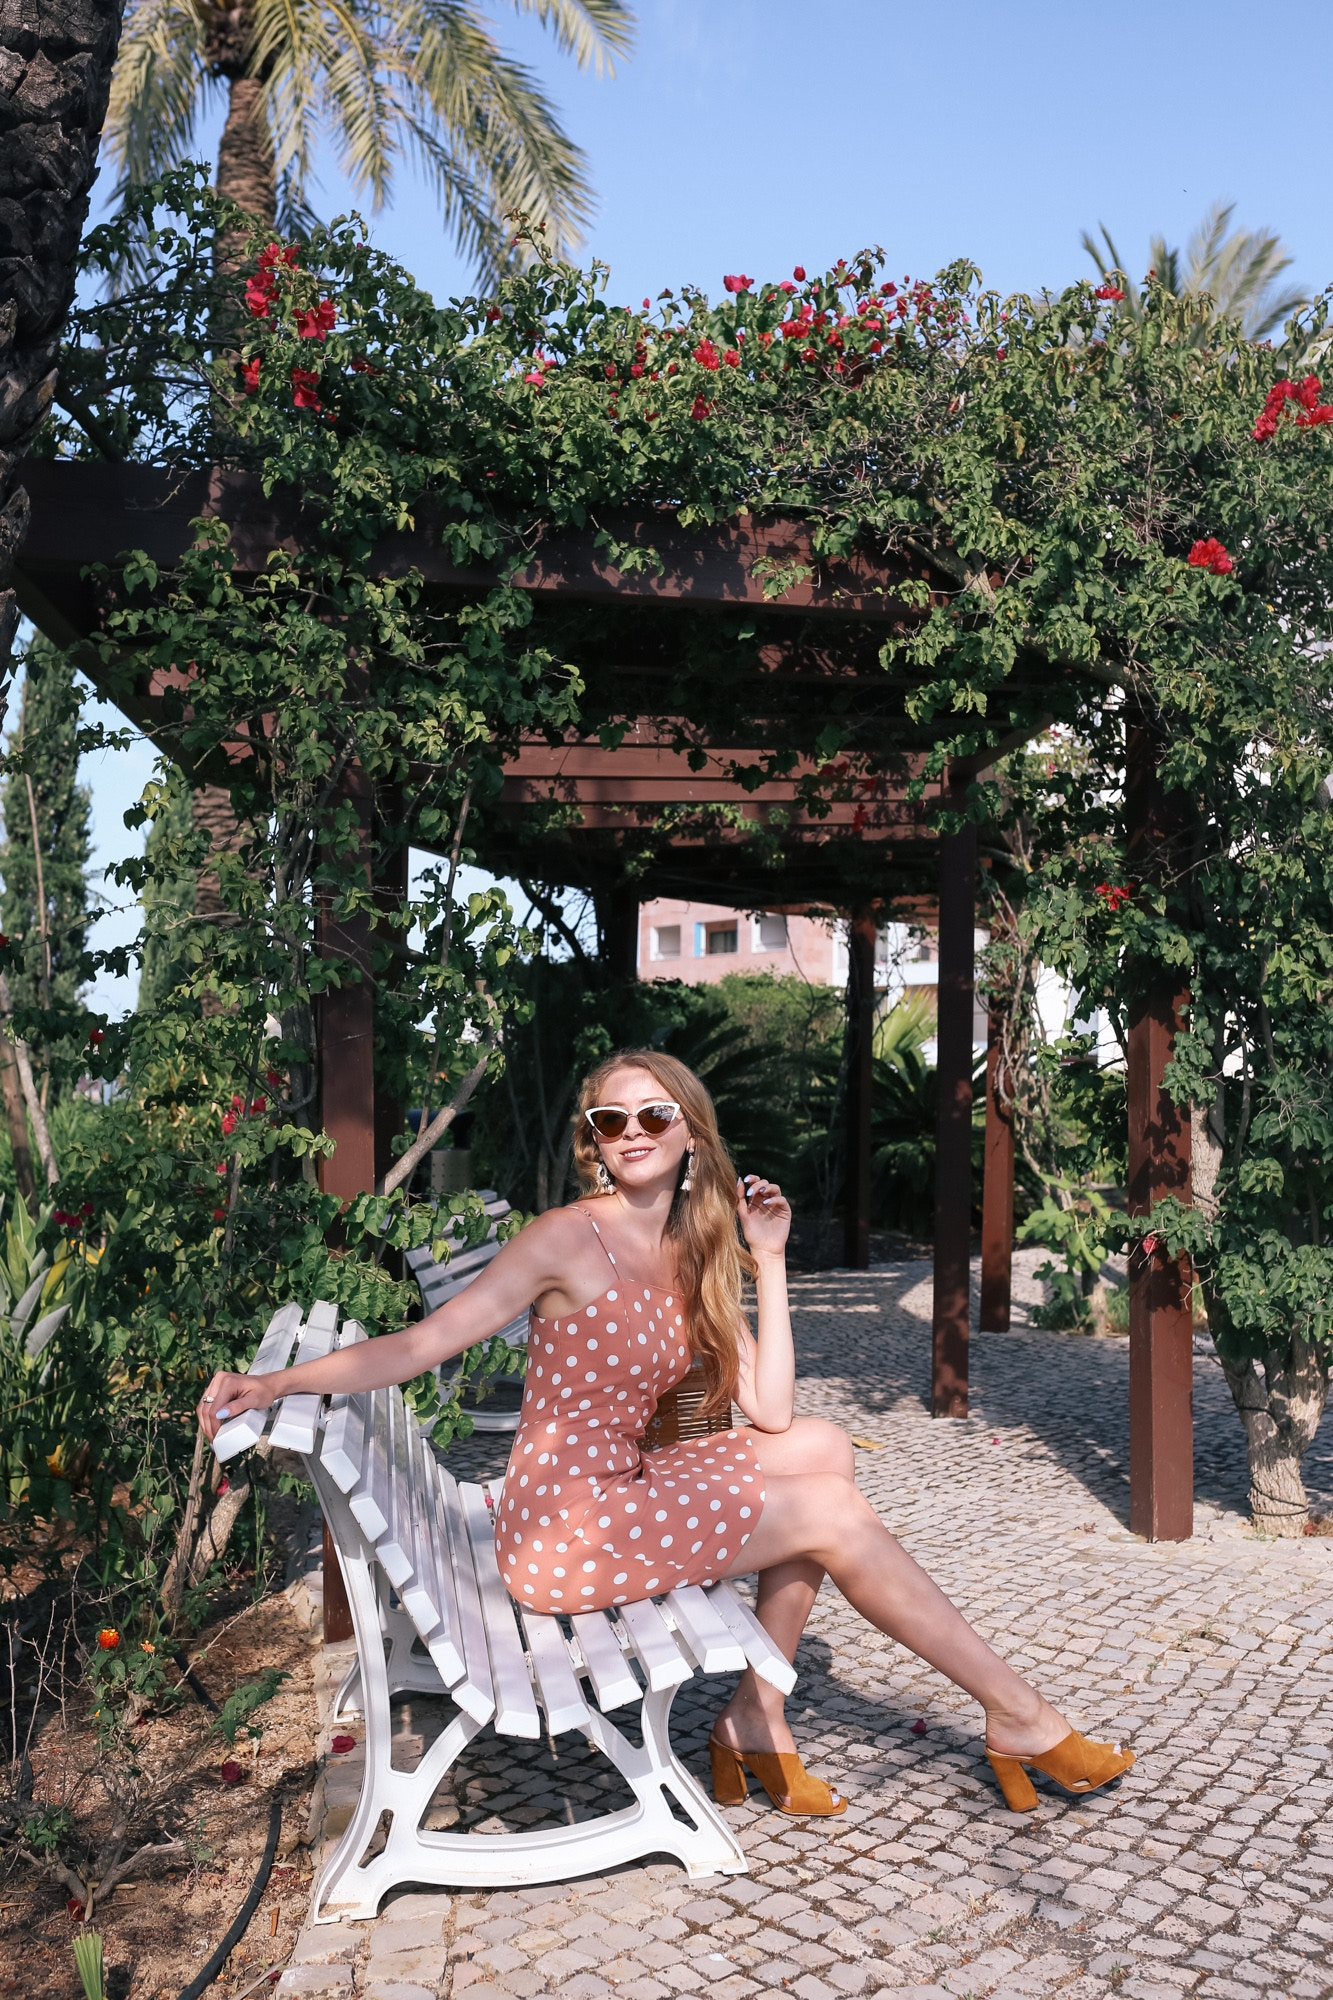 I wore this polka dot dress from Forever 21 with mules from Vince Camuto for a chic vacation look